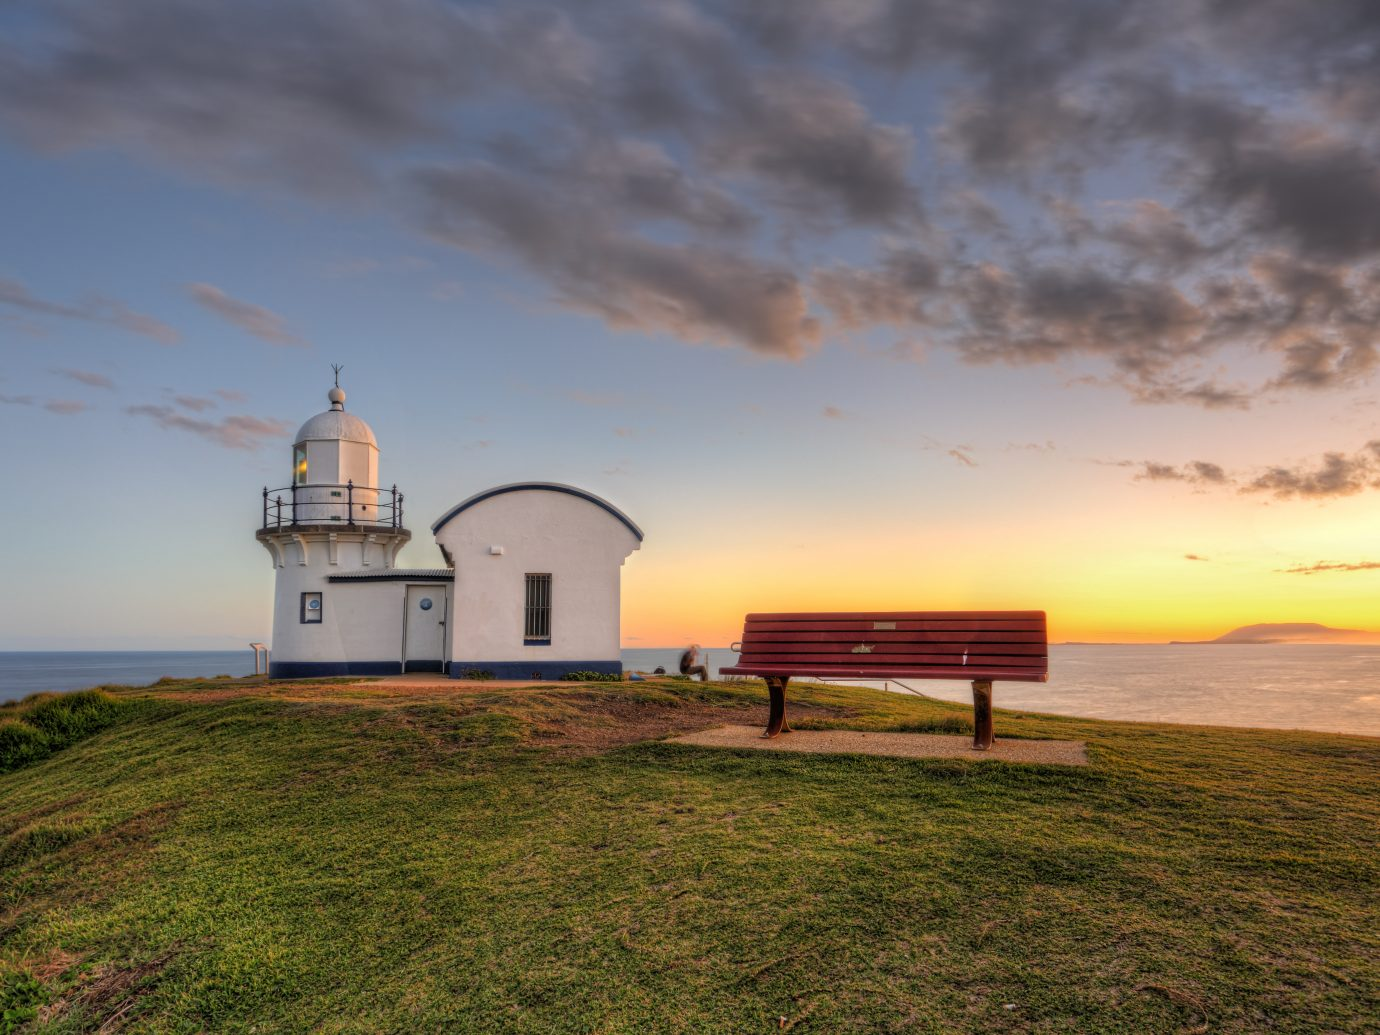 Tacking Point Lighthouse at Port Macquarie